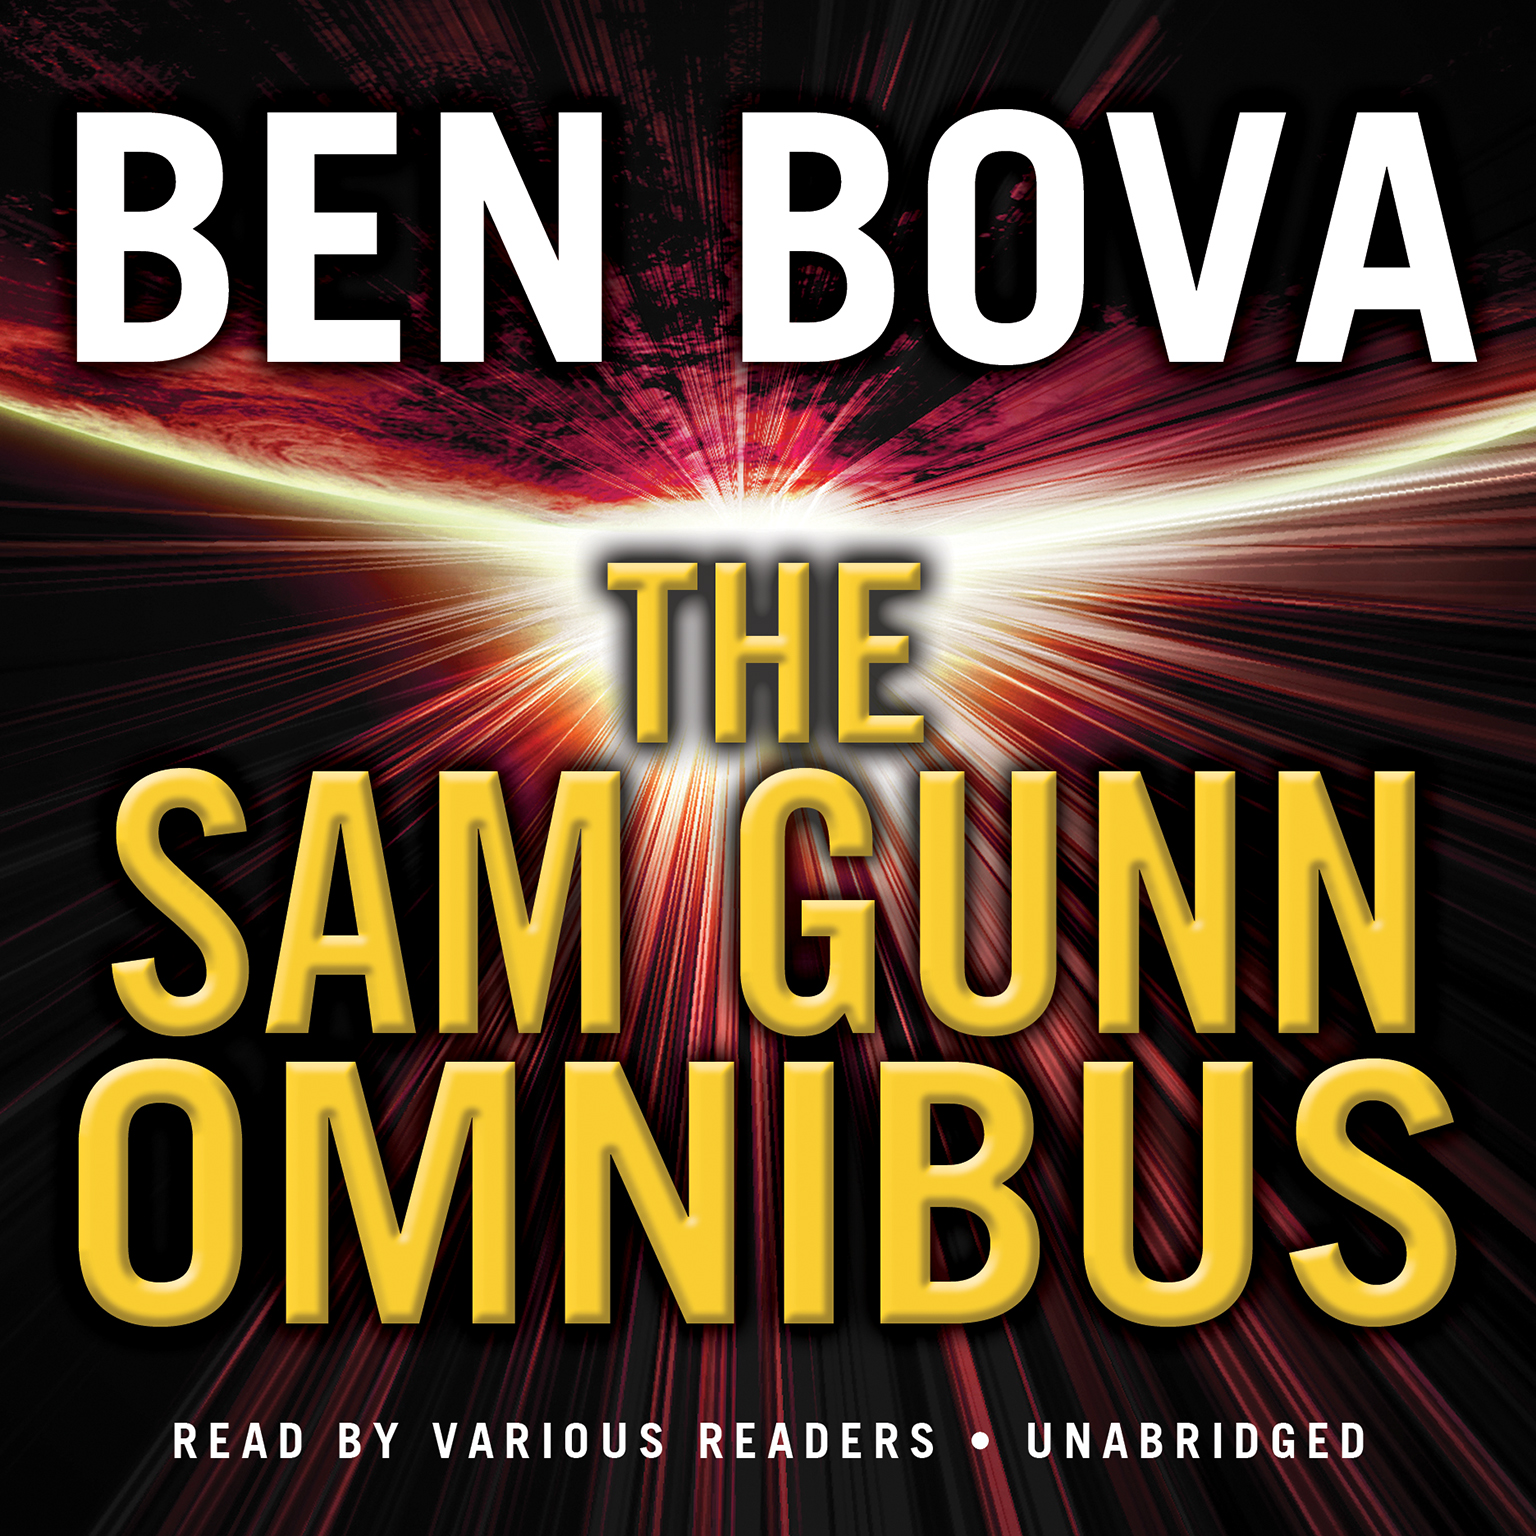 Printable The Sam Gunn Omnibus Audiobook Cover Art